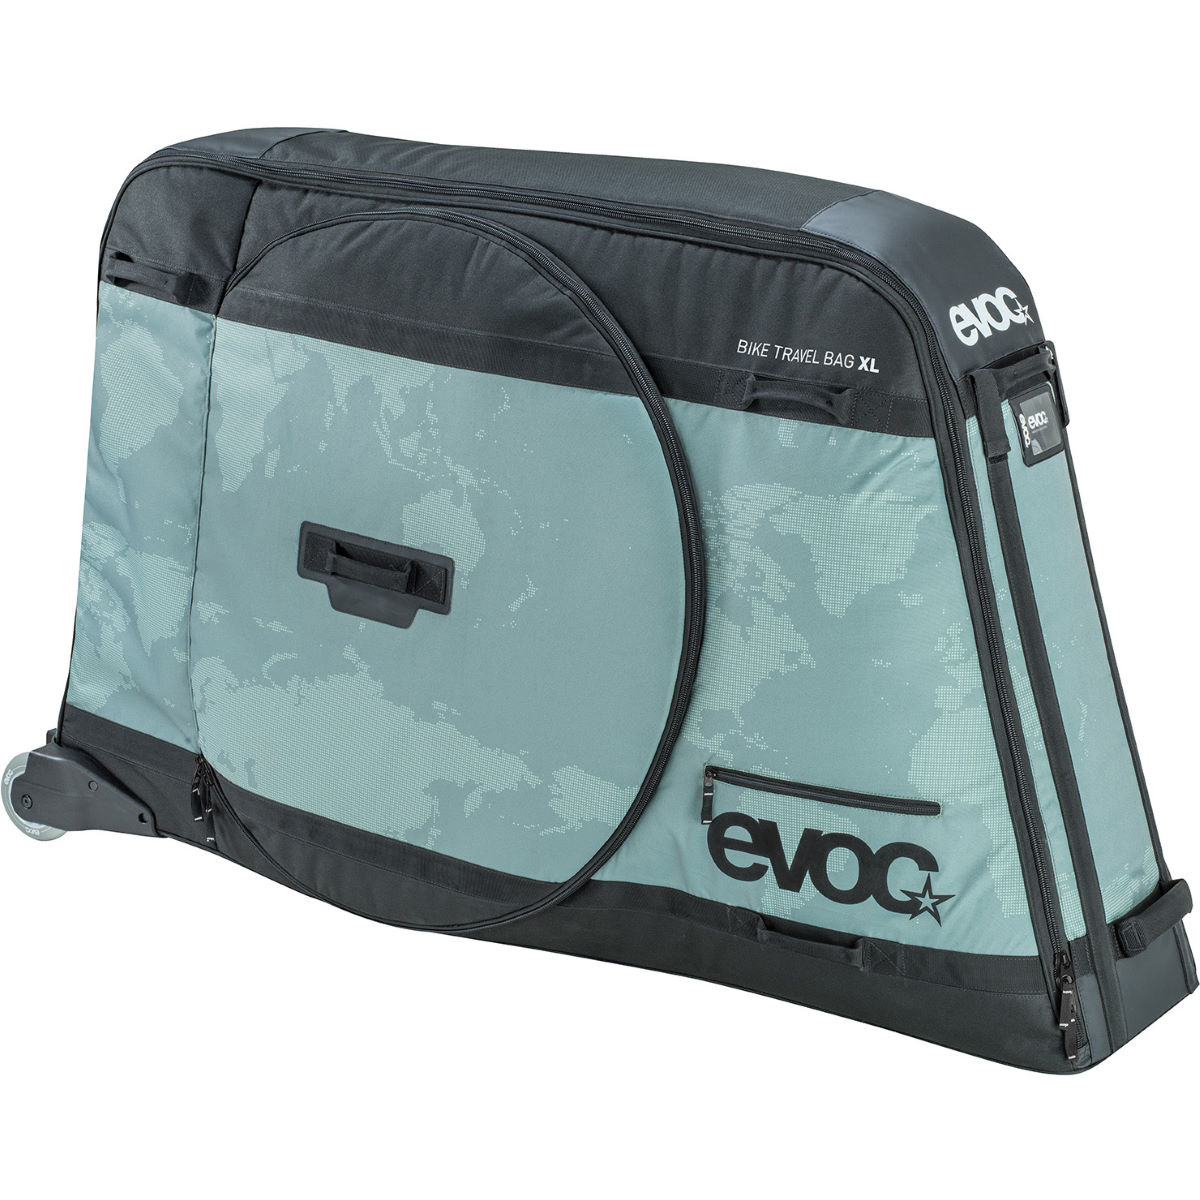 Evoc Bike Travel Bag XL (320L) - Bolsas portabicicletas